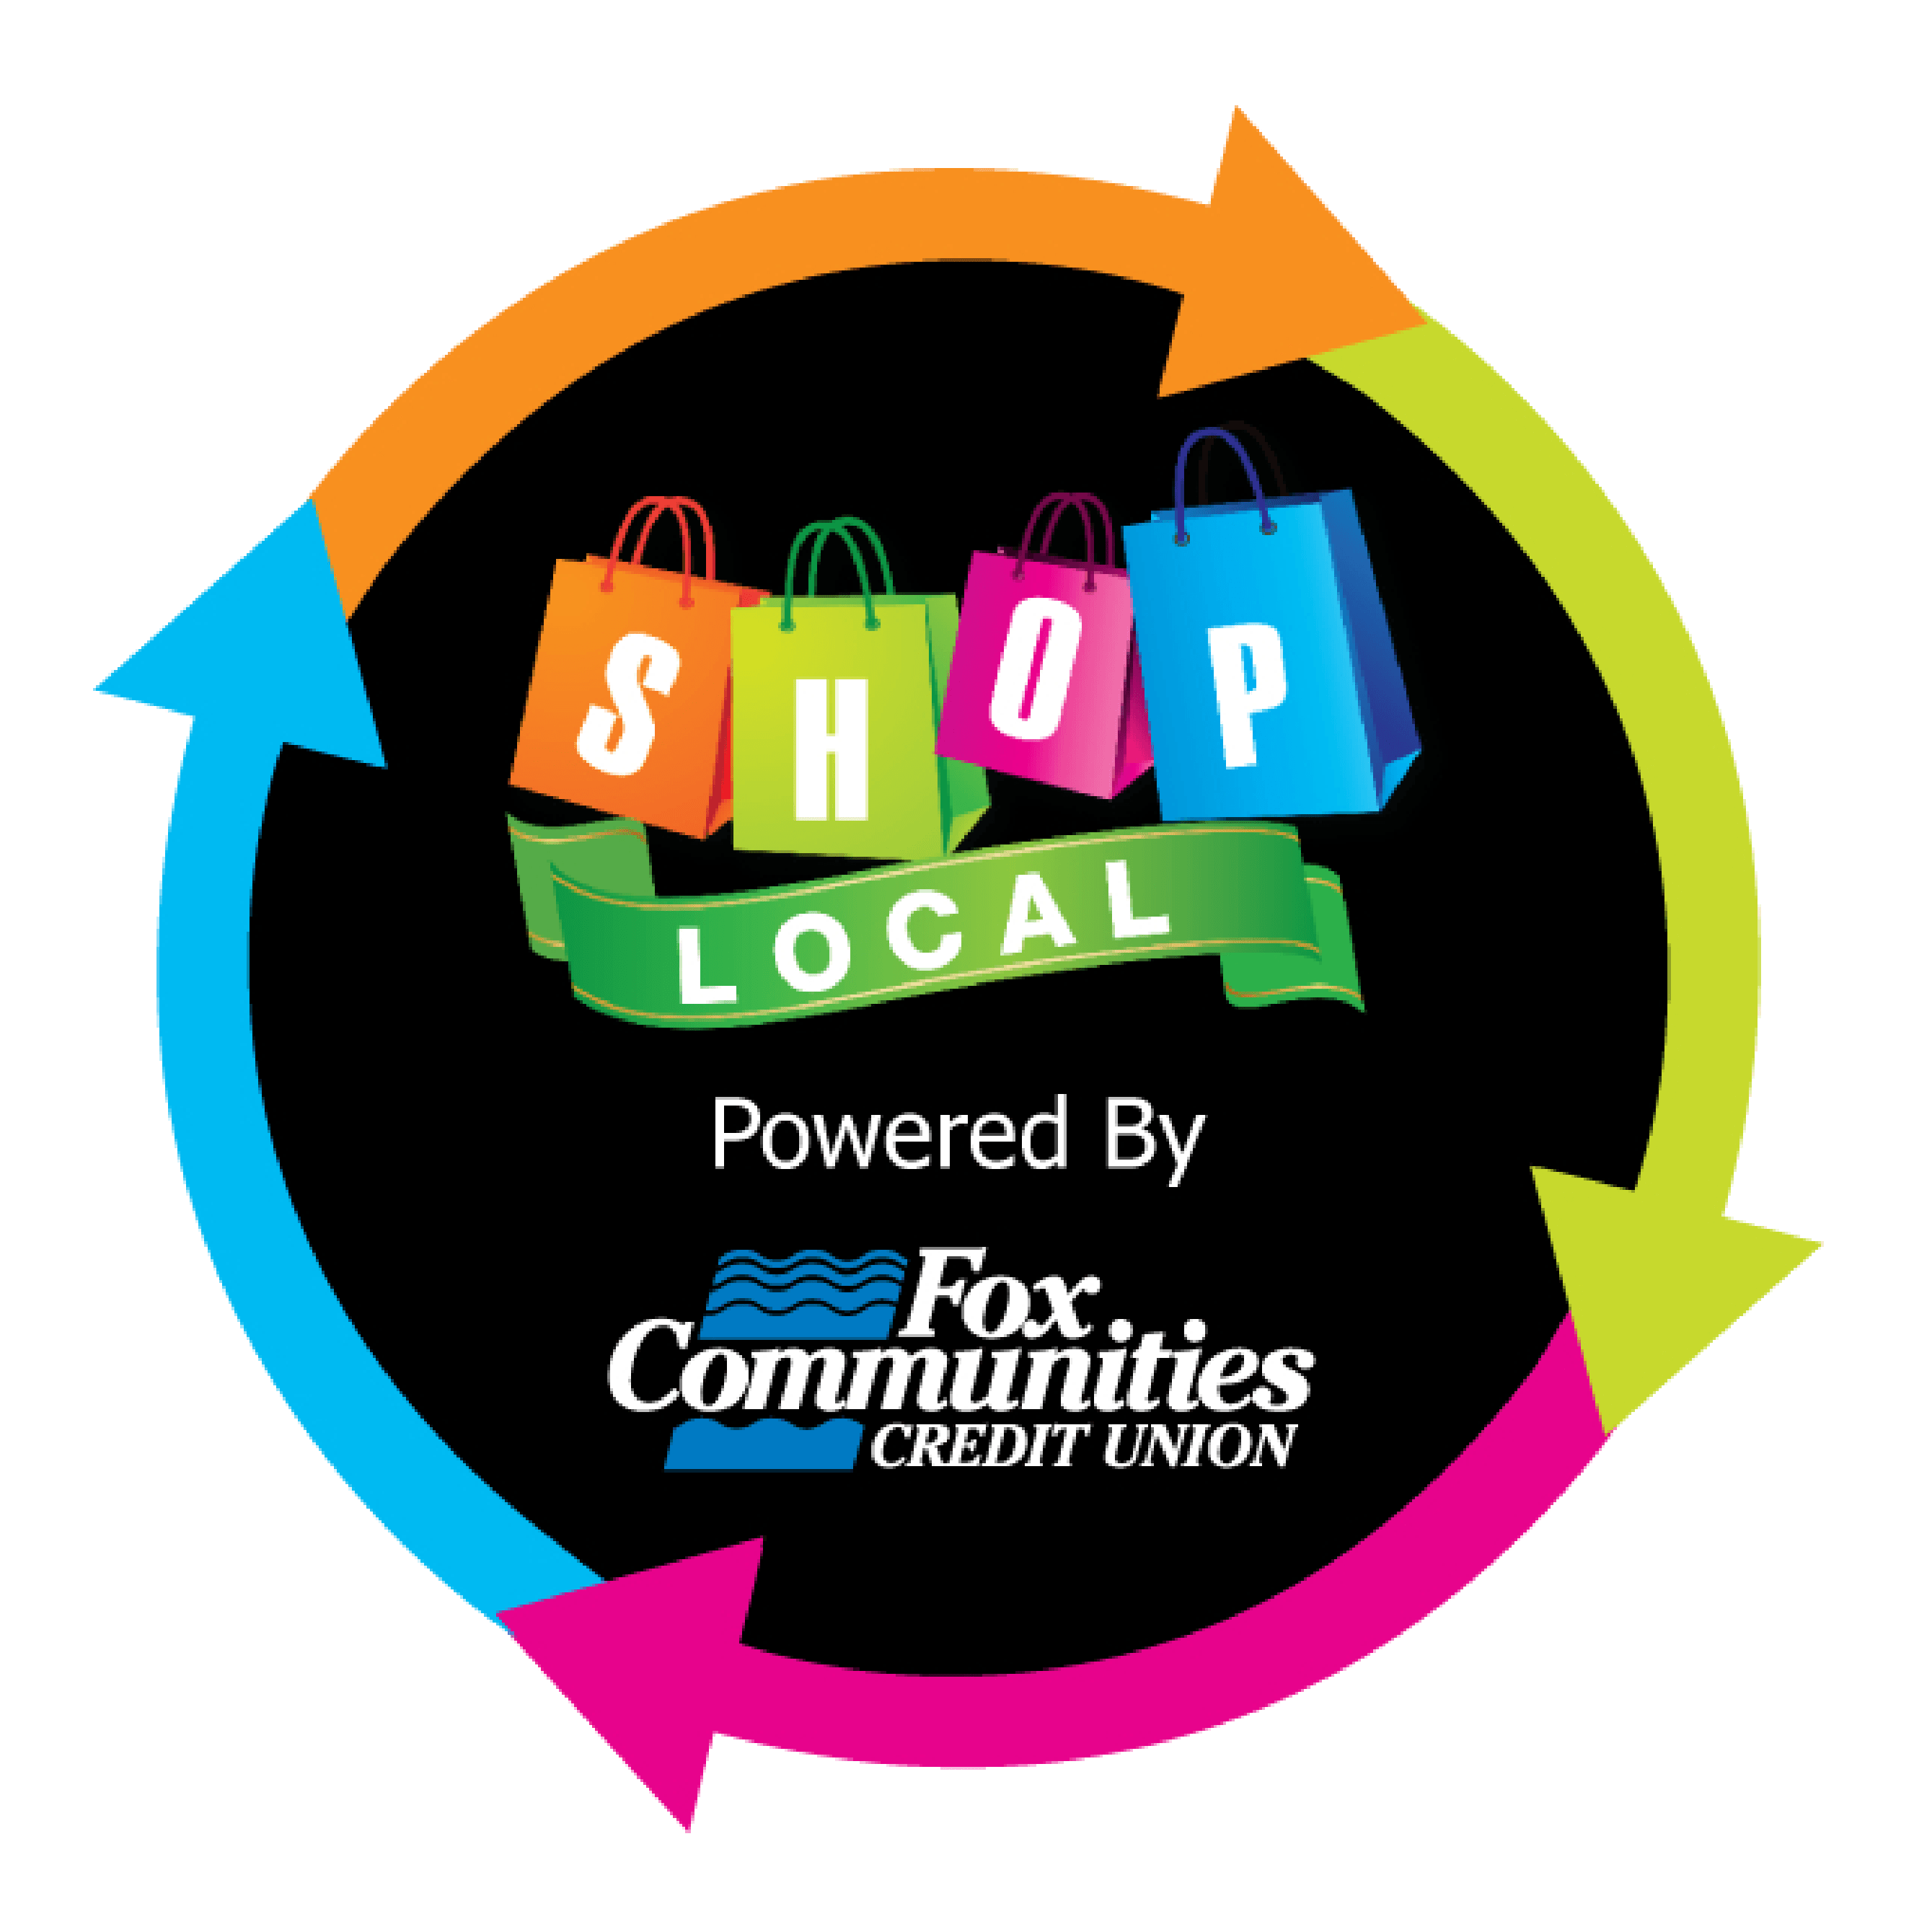 Shop Local and Fox Communities Credit Union Announce Partnership